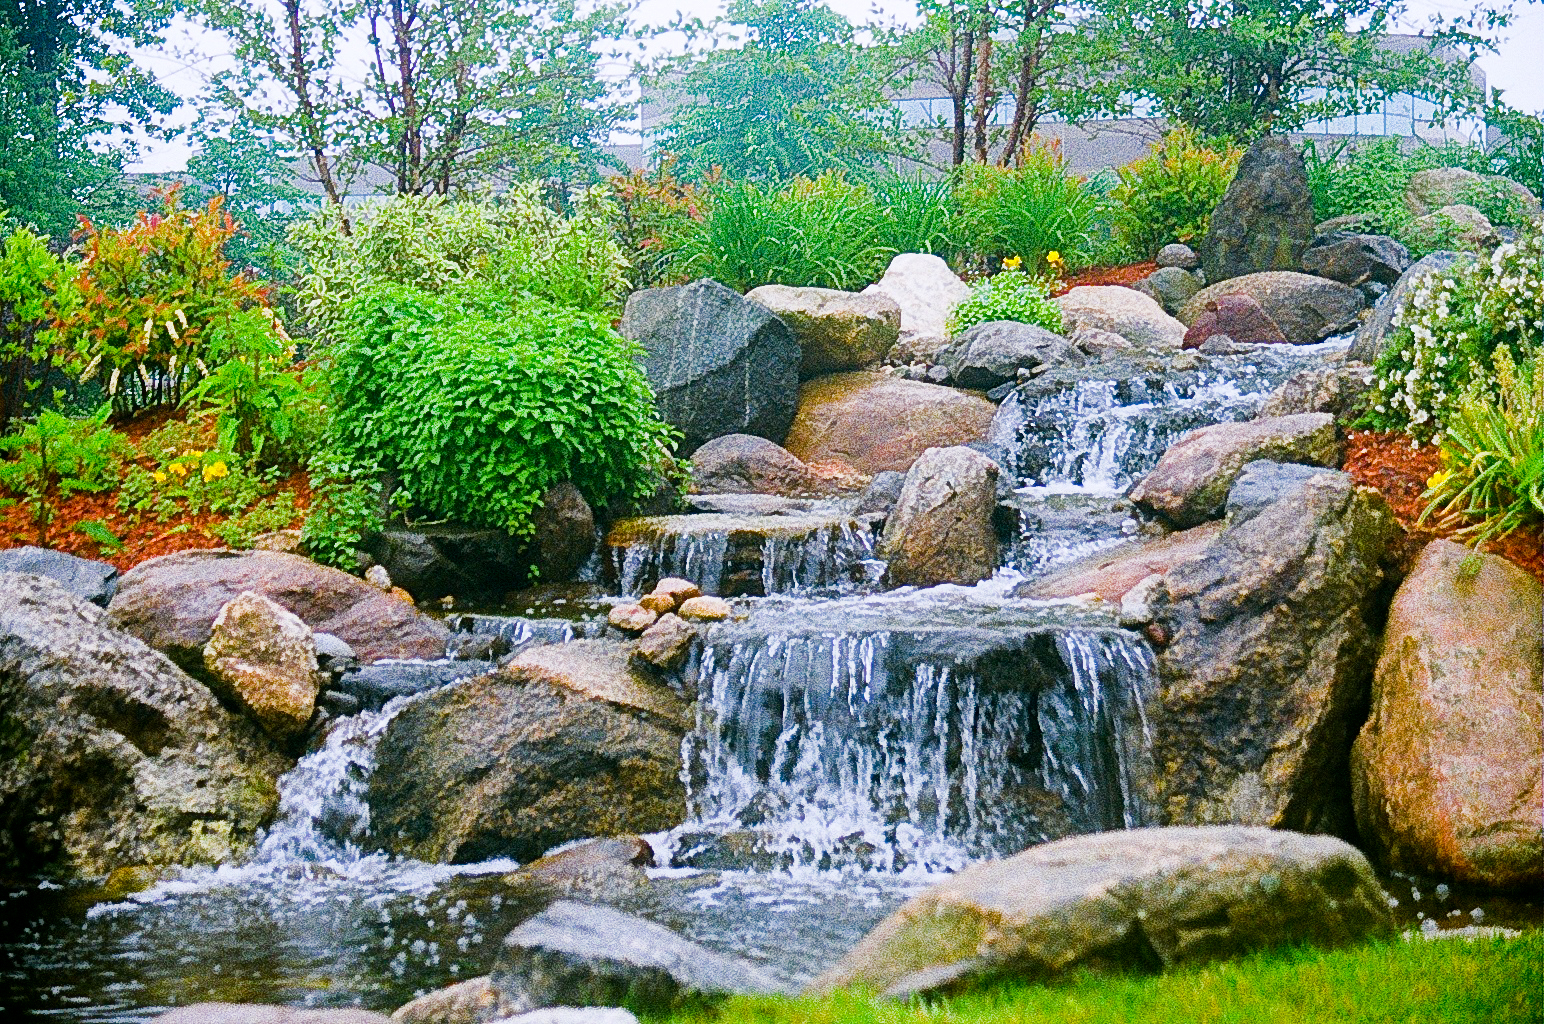 Garden water features services in brisbane queensland au for Landscape design pictures